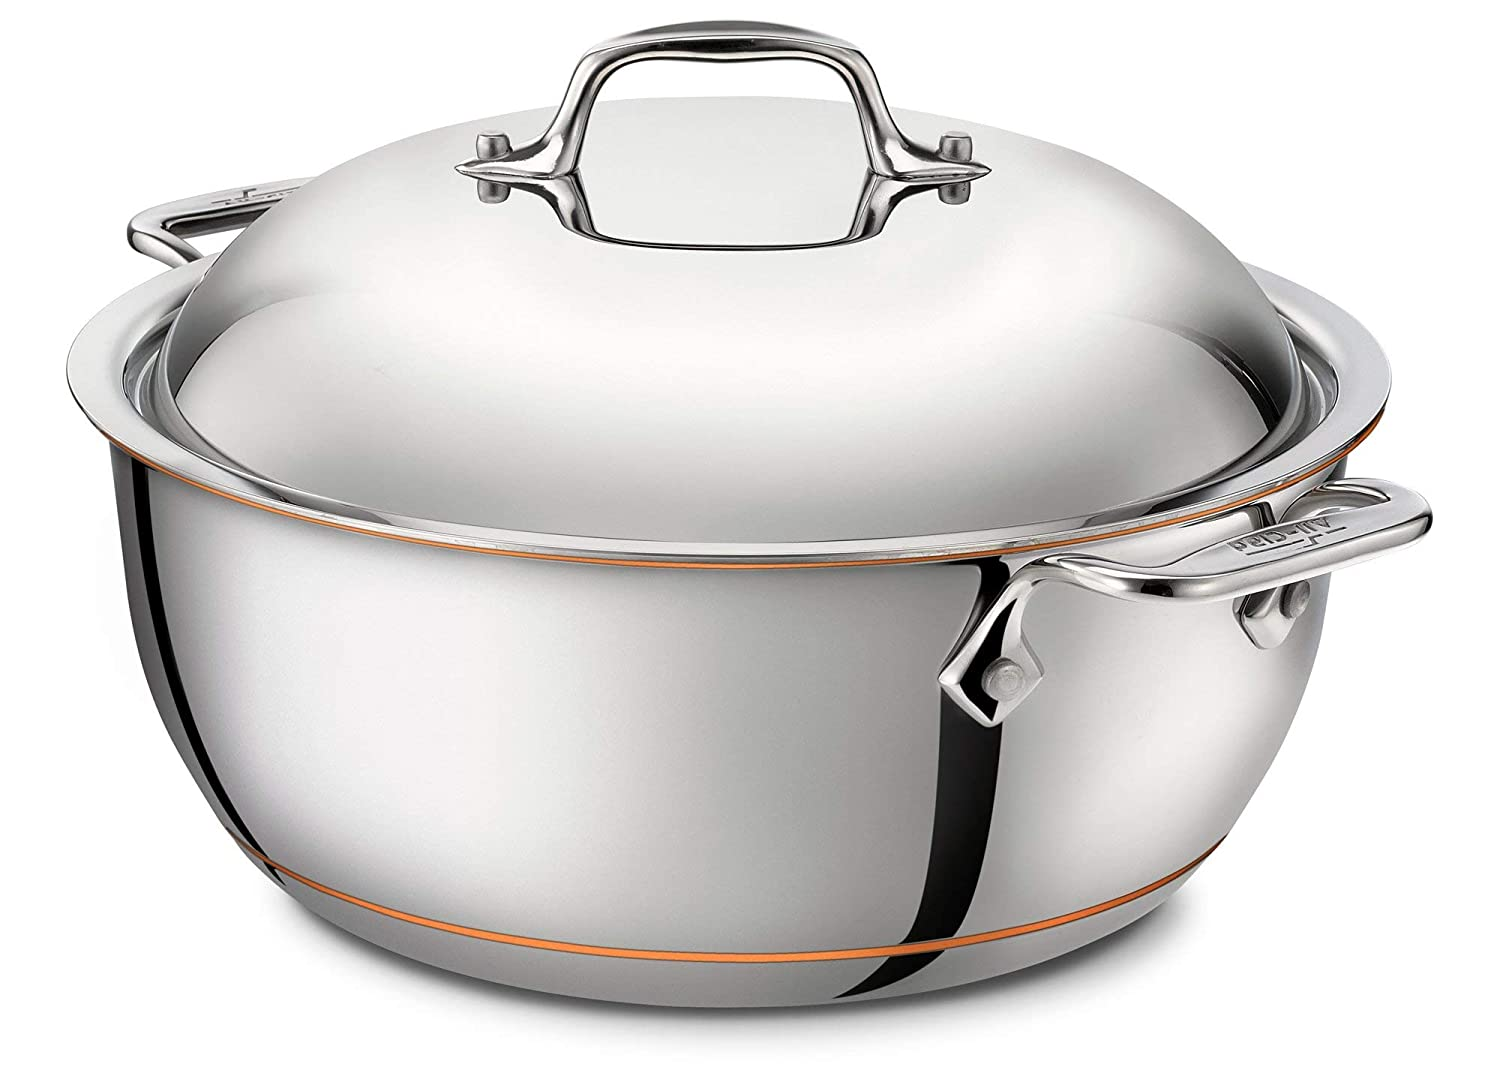 All-Clad 6500 SS Copper Core 5-Ply Bonded Dishwasher Safe Dutch Oven with Lid / Cookware, 5.5-Quart, Silver